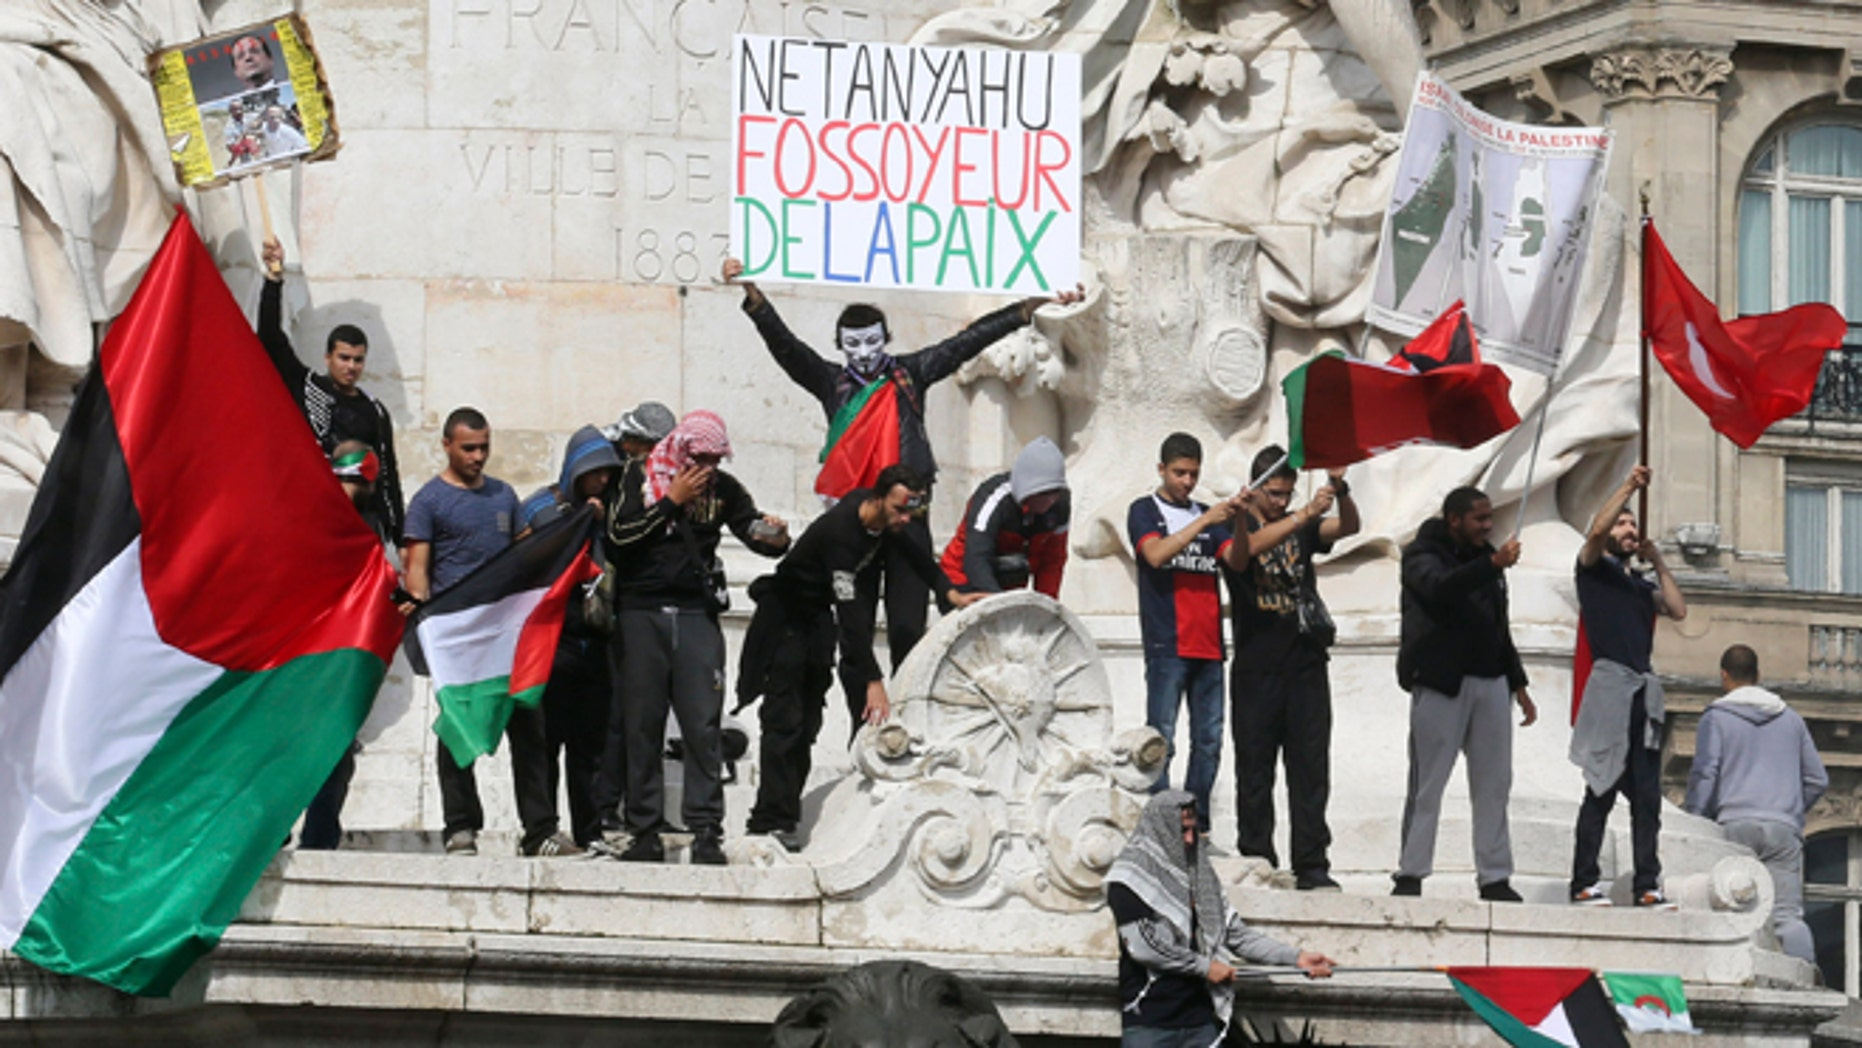 """July 13, 2014: Pro-Palestinian demonstrators wave Palestinian flags and chant anti Israeli slogans on the statue of Republic in Paris, to protest against the Israeli army's bombings in the Gaza strip. Banner reads: """"Netanyahu gravedigger of peace."""" About 10,000 pro-Palestinian protesters marched through eastern Paris on Sunday demanding an end to Israeli strikes on Gaza, and accusing Western leaders of not doing enough to stop them."""